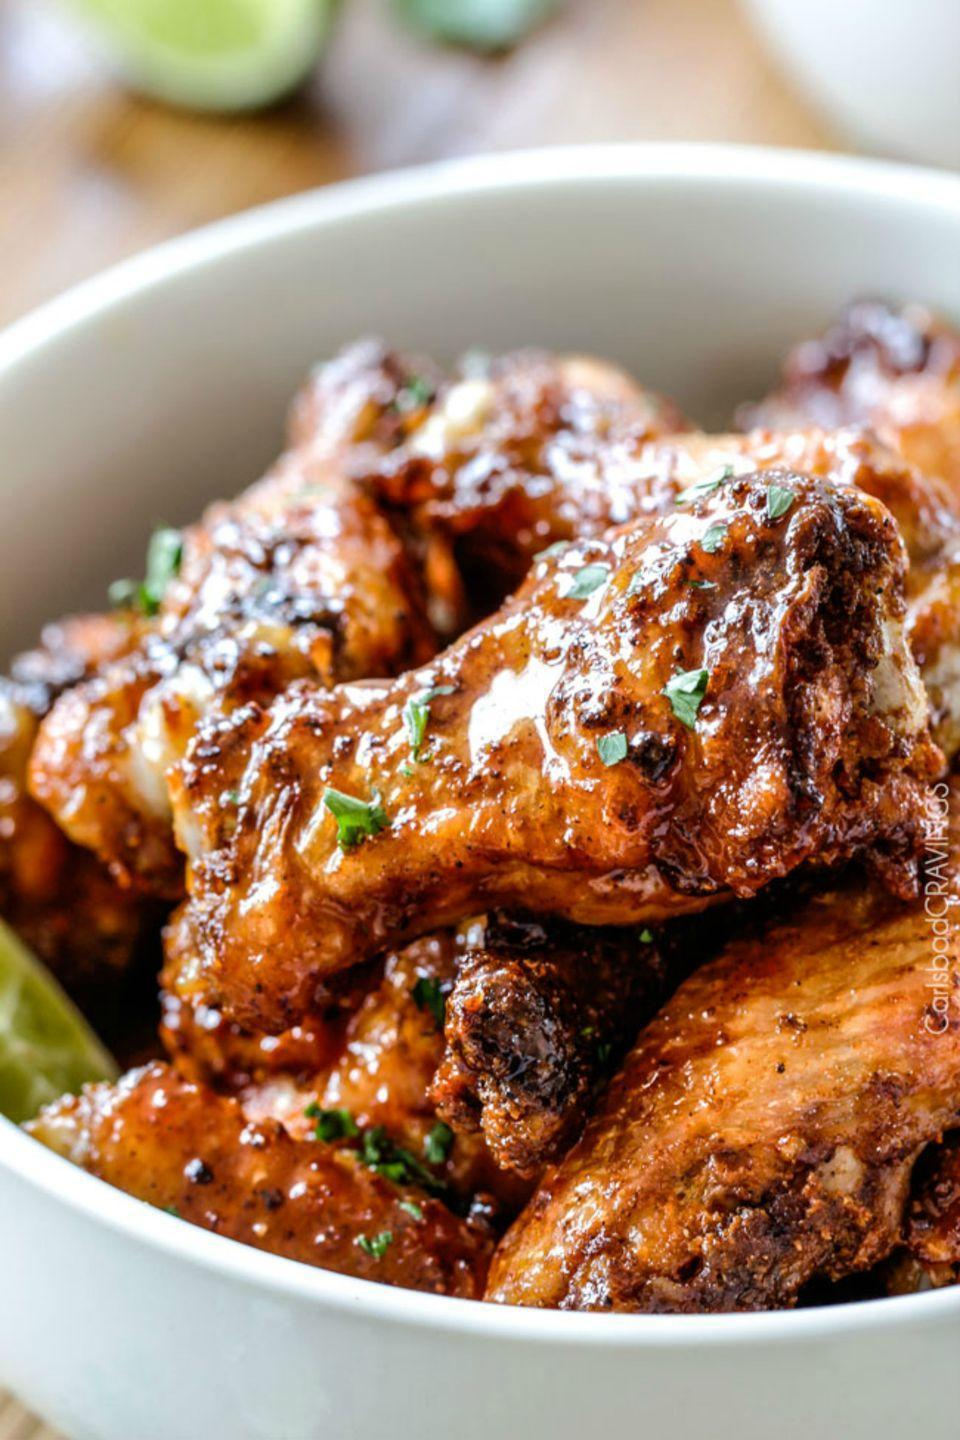 "<p>We recommend making an extra batch of these sticky but oh-so-good honey lime wings, because they're gonna go fast.</p><p><strong>Get the recipe <a href=""http://carlsbadcravings.com/baked-chipotle-honey-lime-hot-wings-recipe/"" rel=""nofollow noopener"" target=""_blank"" data-ylk=""slk:Carlsbad Cravings"" class=""link rapid-noclick-resp"">Carlsbad Cravings</a>. </strong></p>"